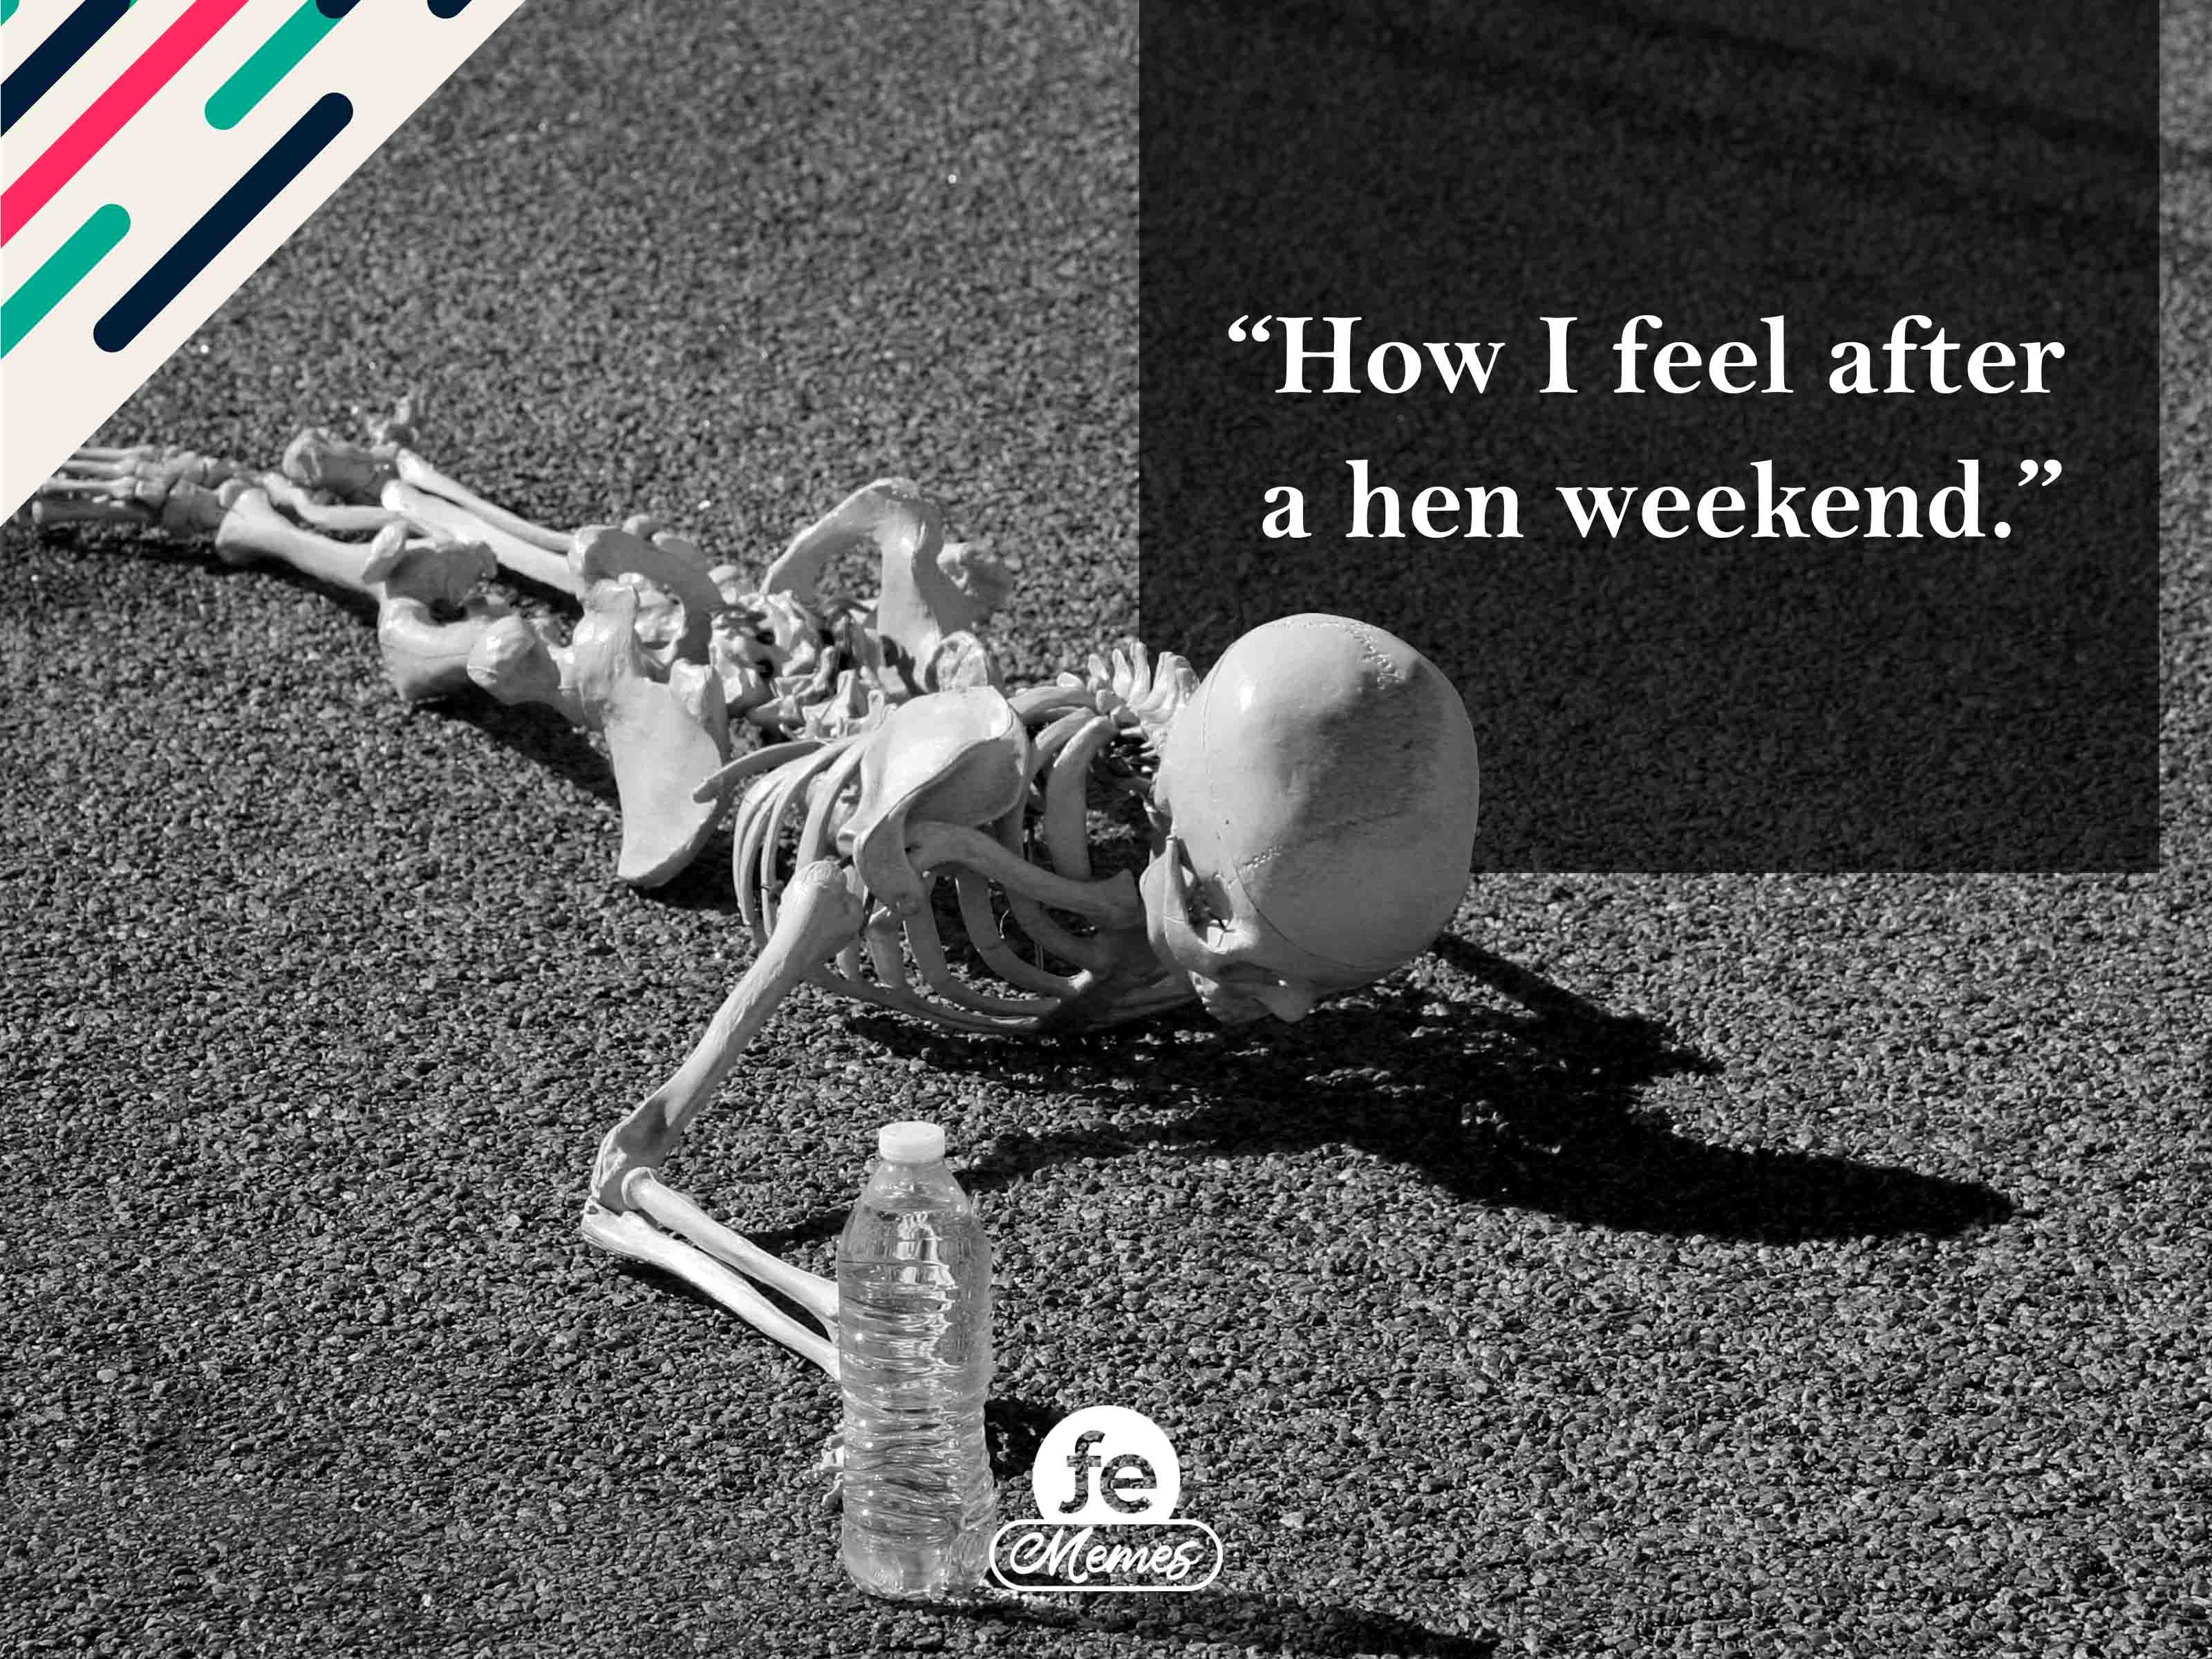 How I feel after a hen weekend - Meme 4